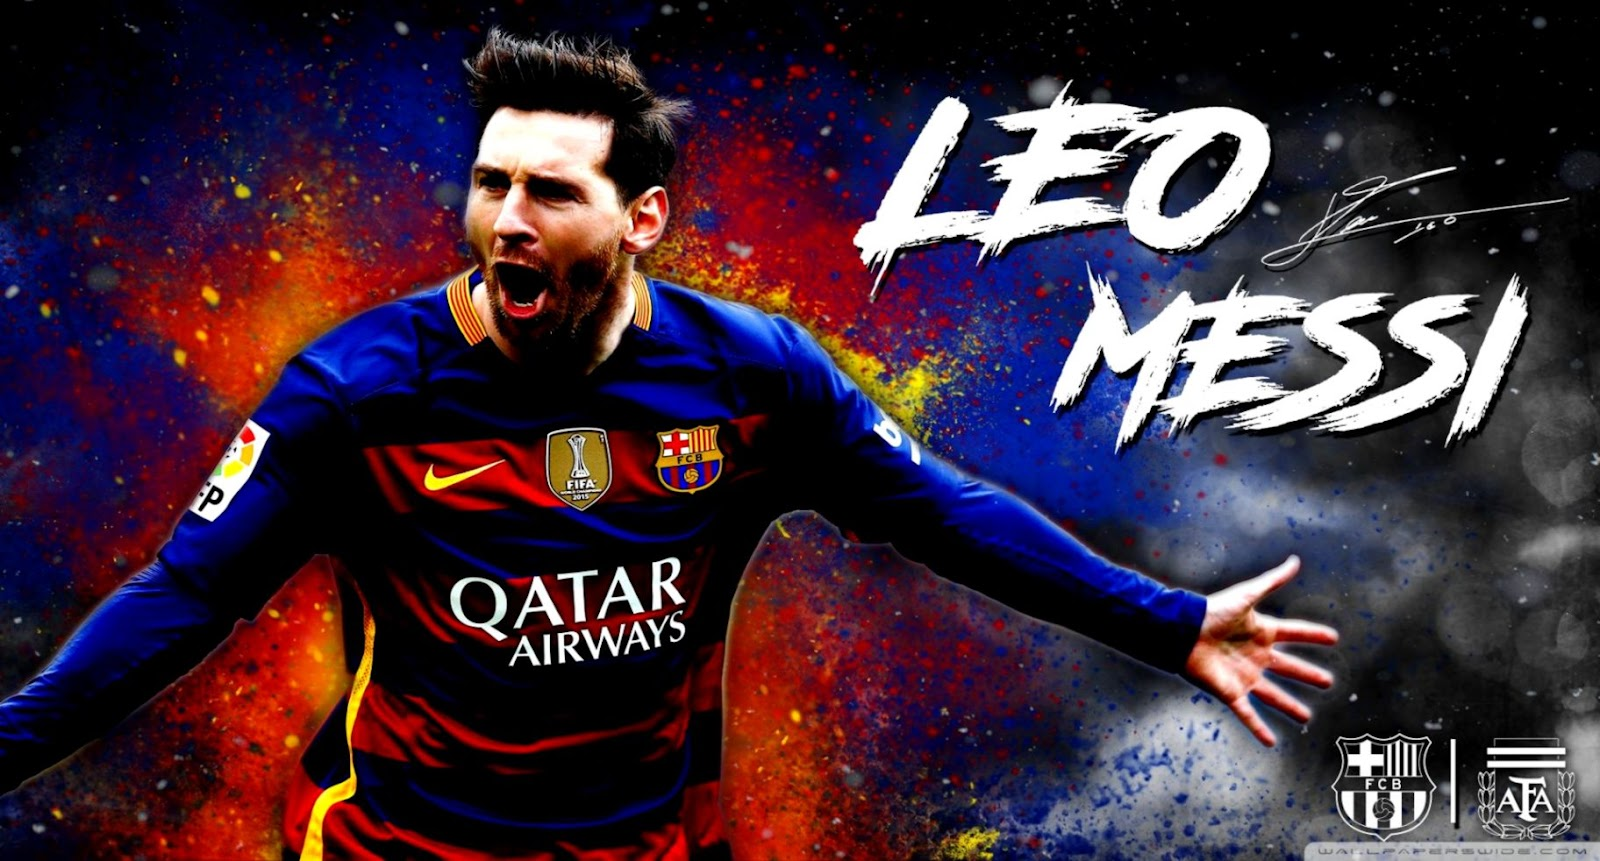 Lionel Messi Hd Soccer Wallpaper Wallpapers Themes